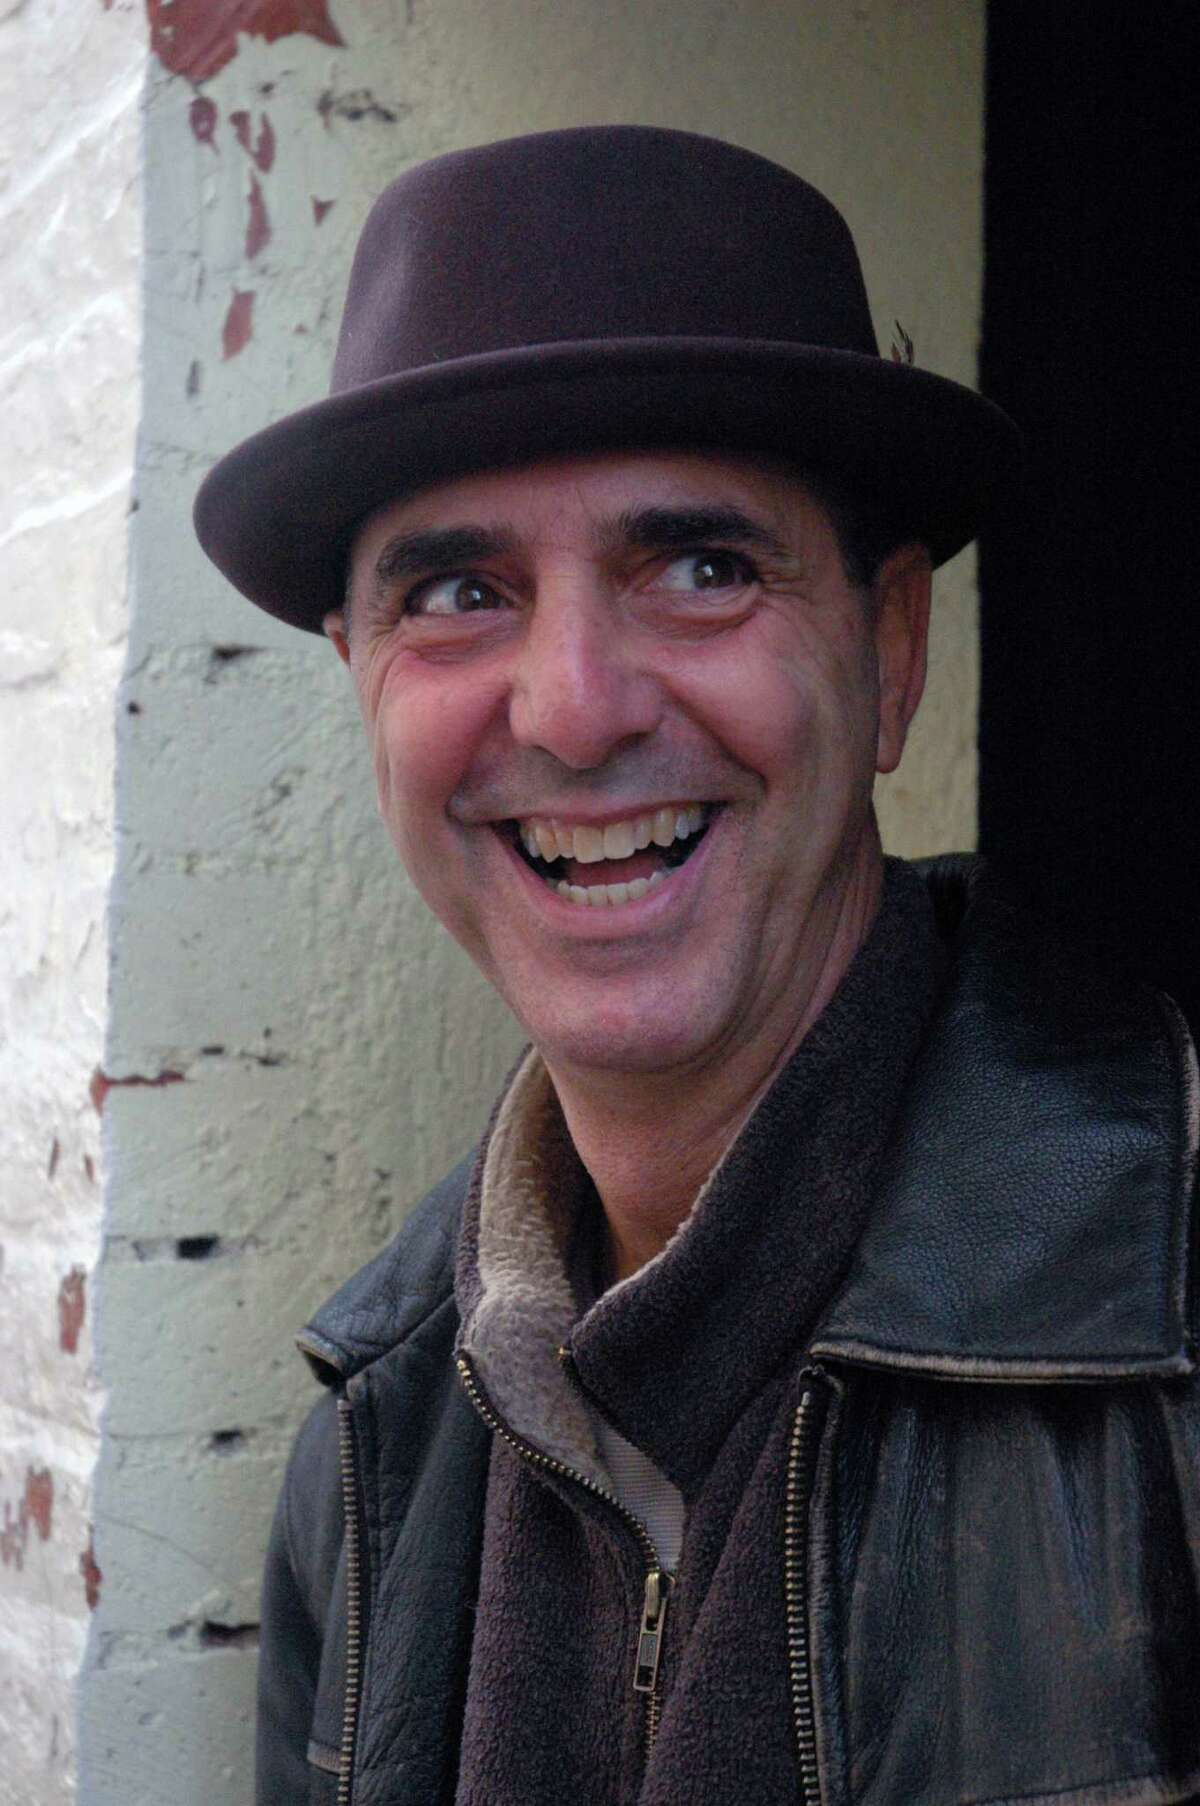 """Comedian Michael """"Motts"""" Pelazza will perform at the Treehouse Comedy Club at Bistro B in Westport on Saturday, Oct. 8. He will be joined by comedian Andrew Kennedy, his longtime pal."""